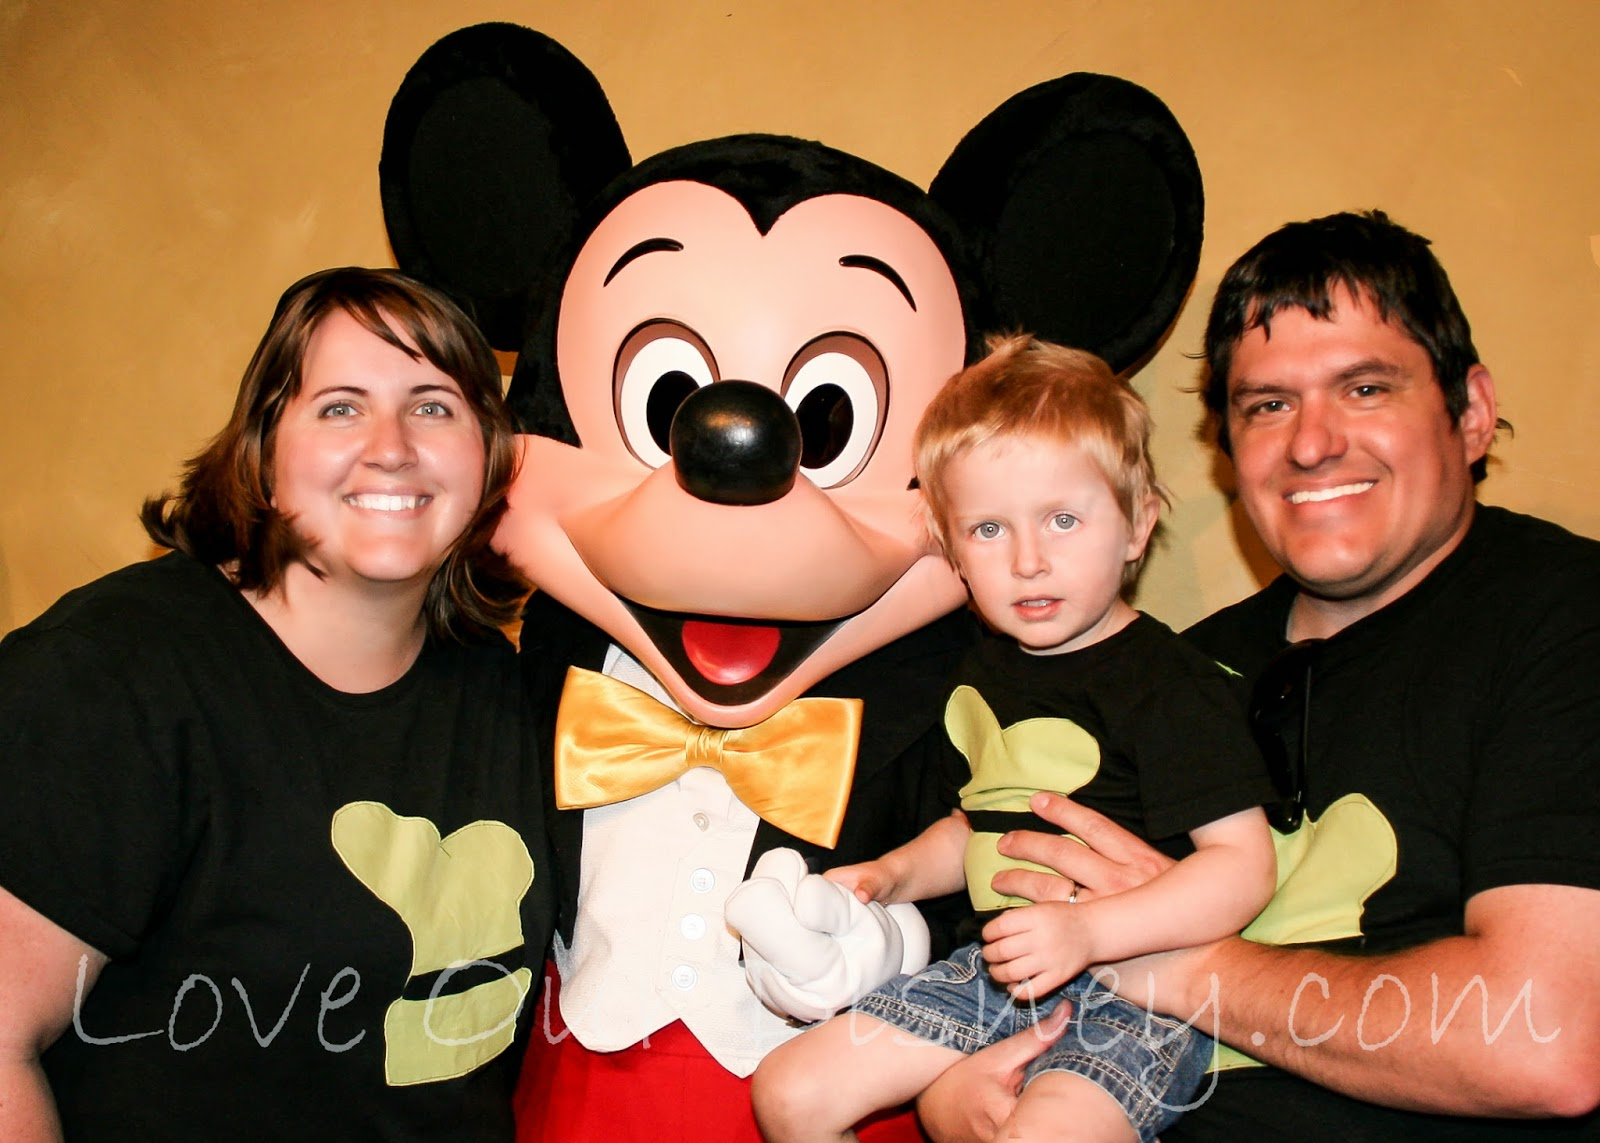 How to get those great Disney vacation photos from LoveOurDisney.com